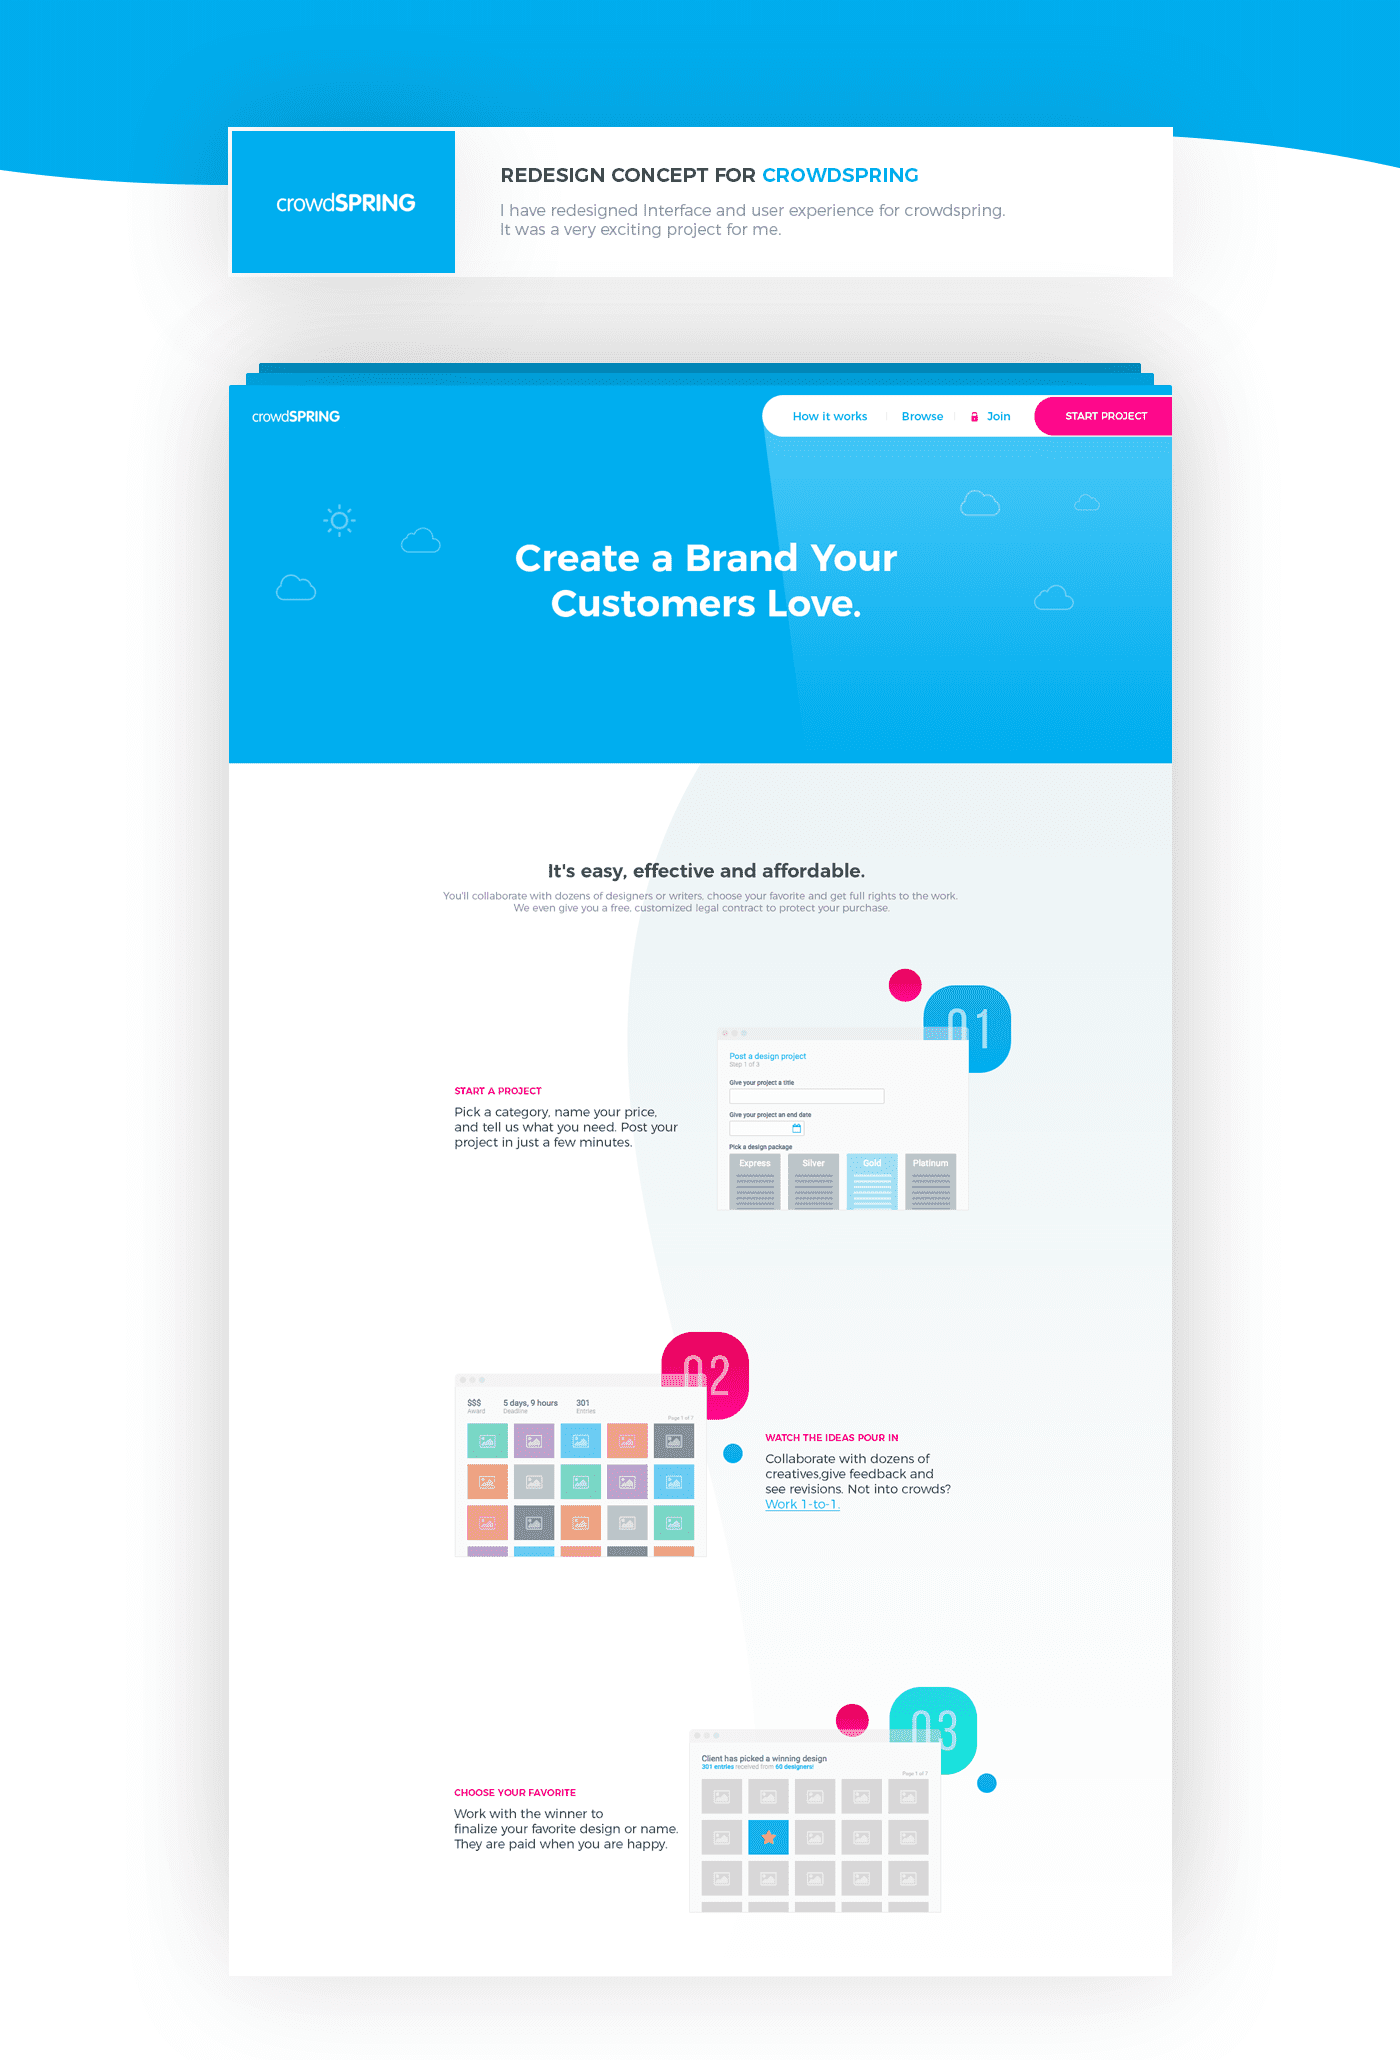 Crowdspring - Redesign Concept